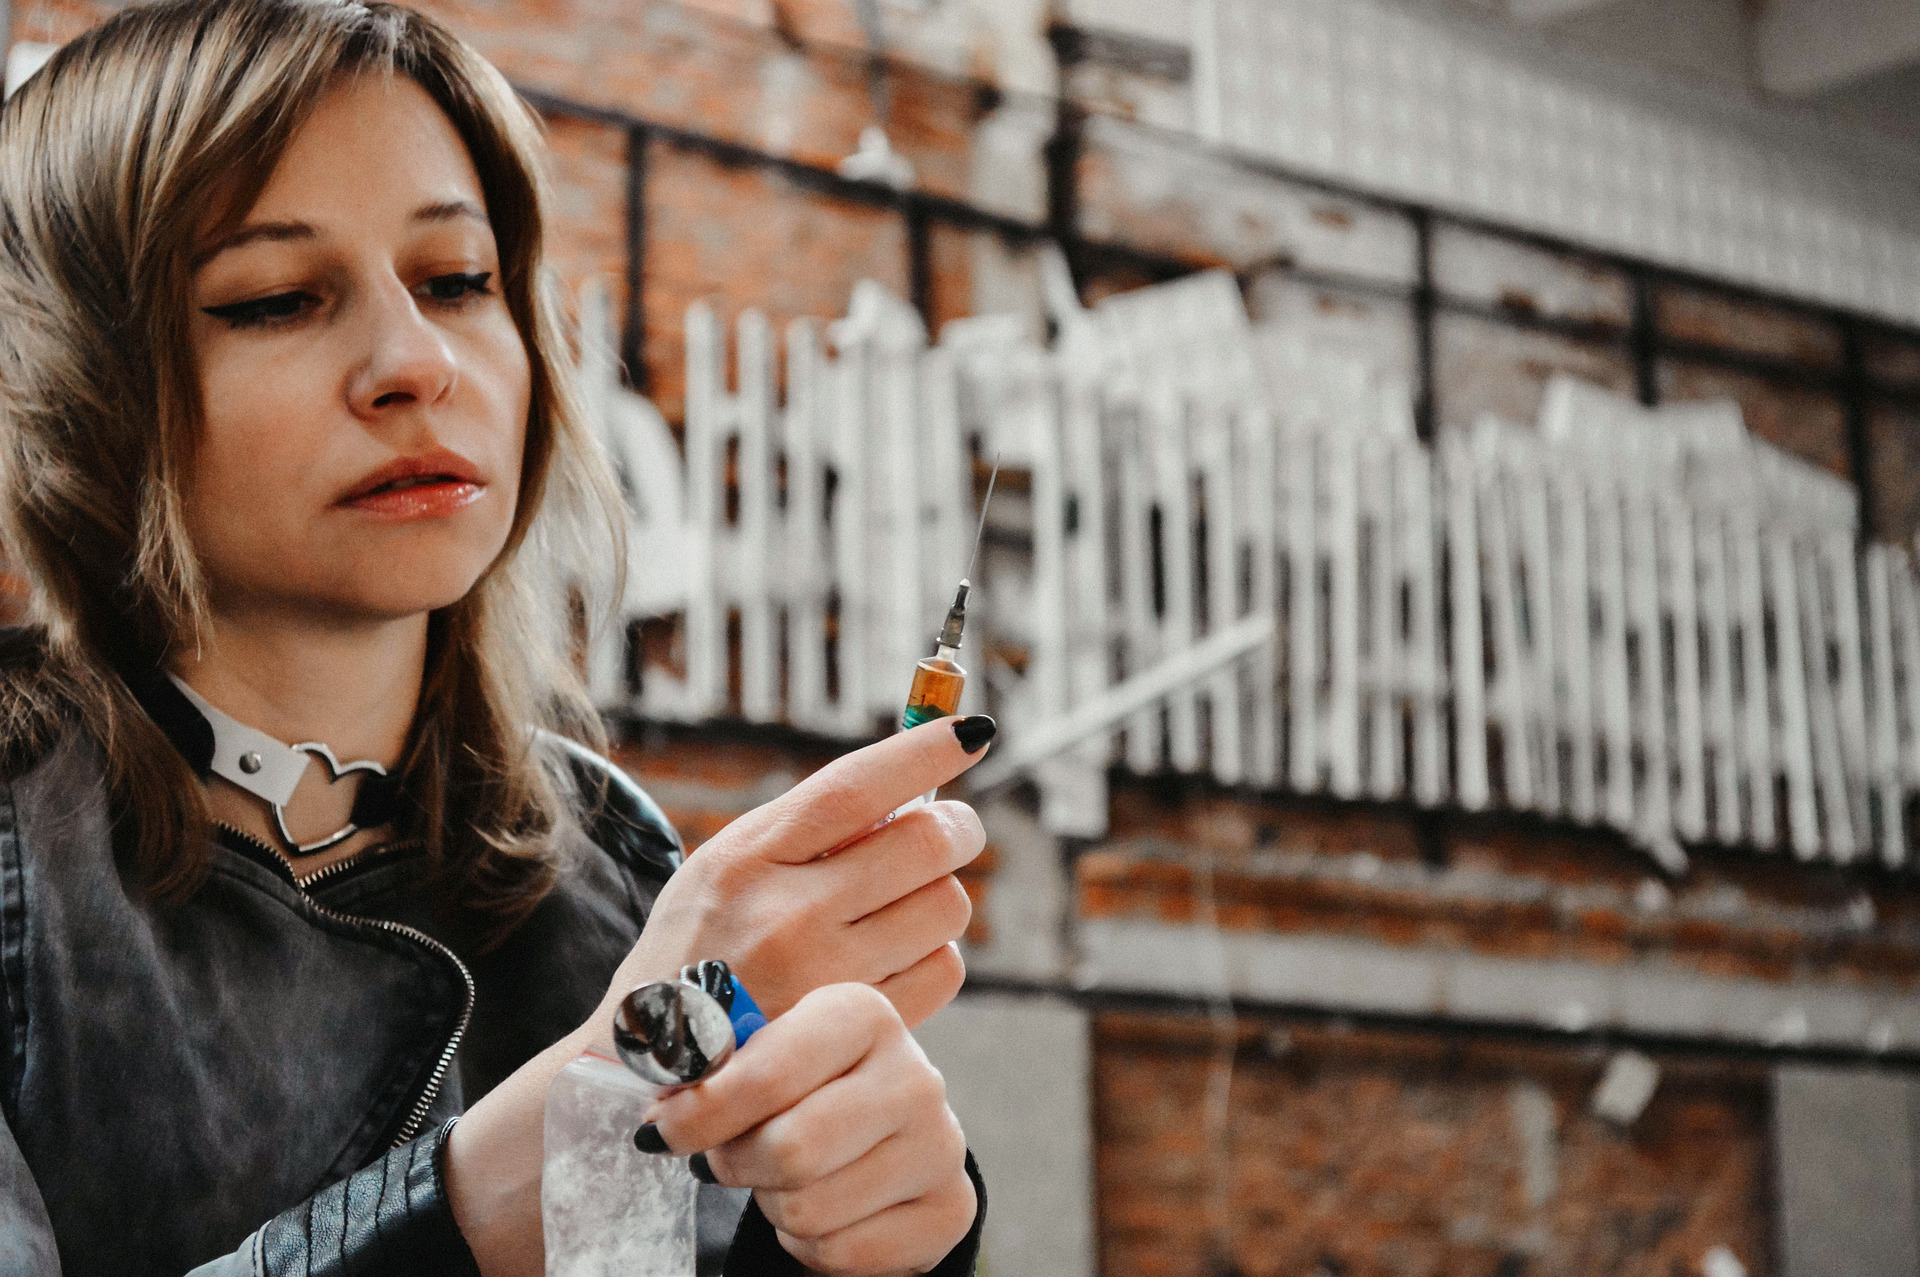 Woman with the tools used to further her cocaine addiction